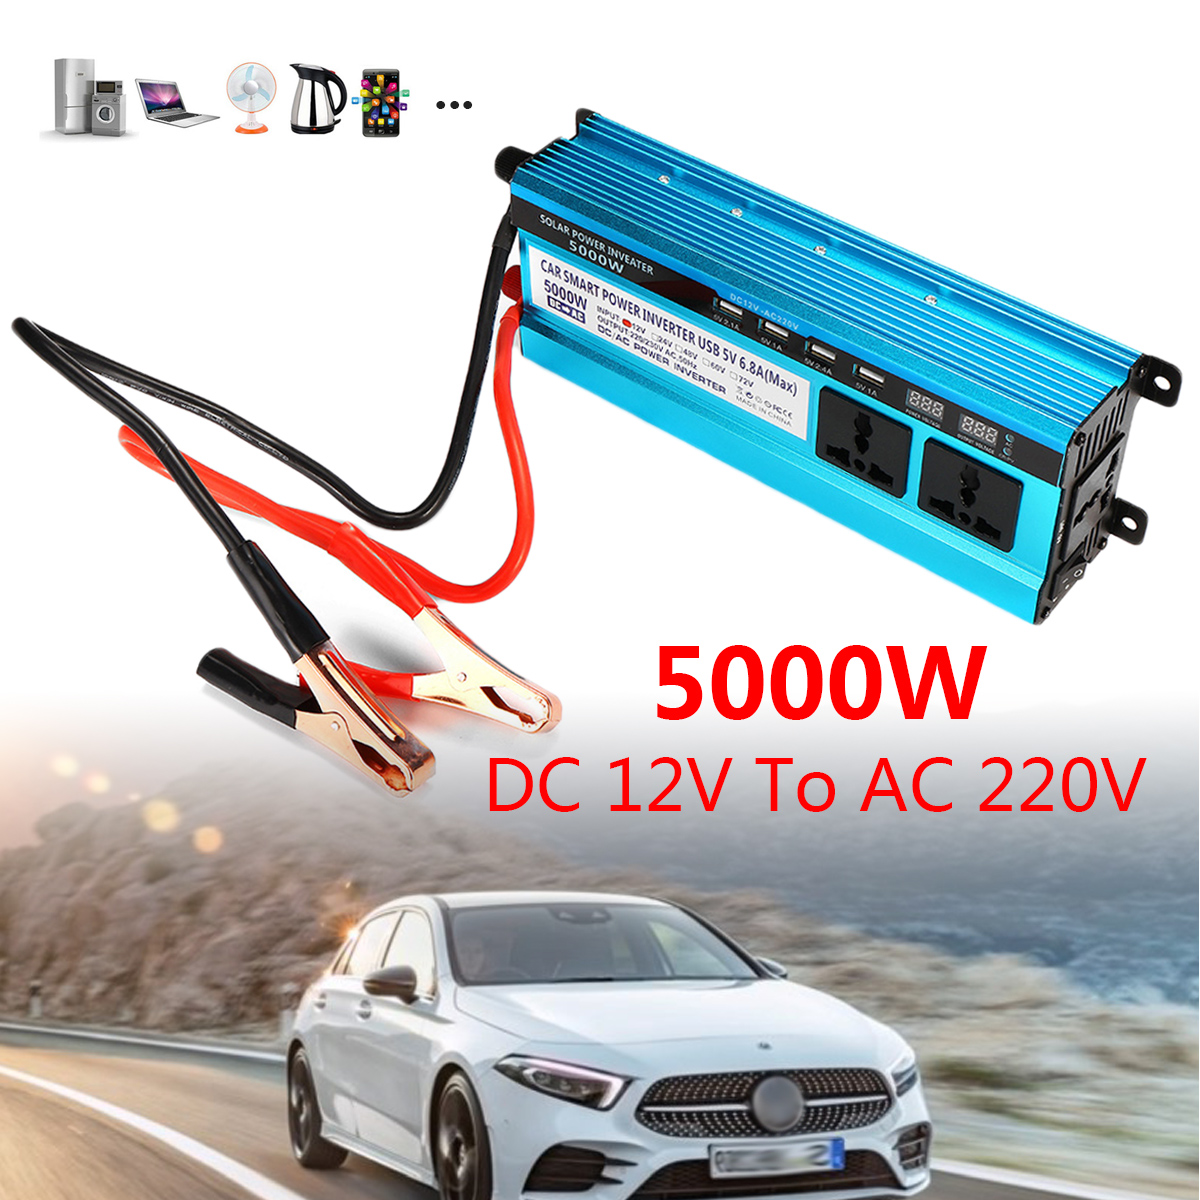 5000W 12V/24V DC to 220VAC Solar Power Inverter Dual LED Screens Modified Sine Wave Converter Overload Protection Cool Fan